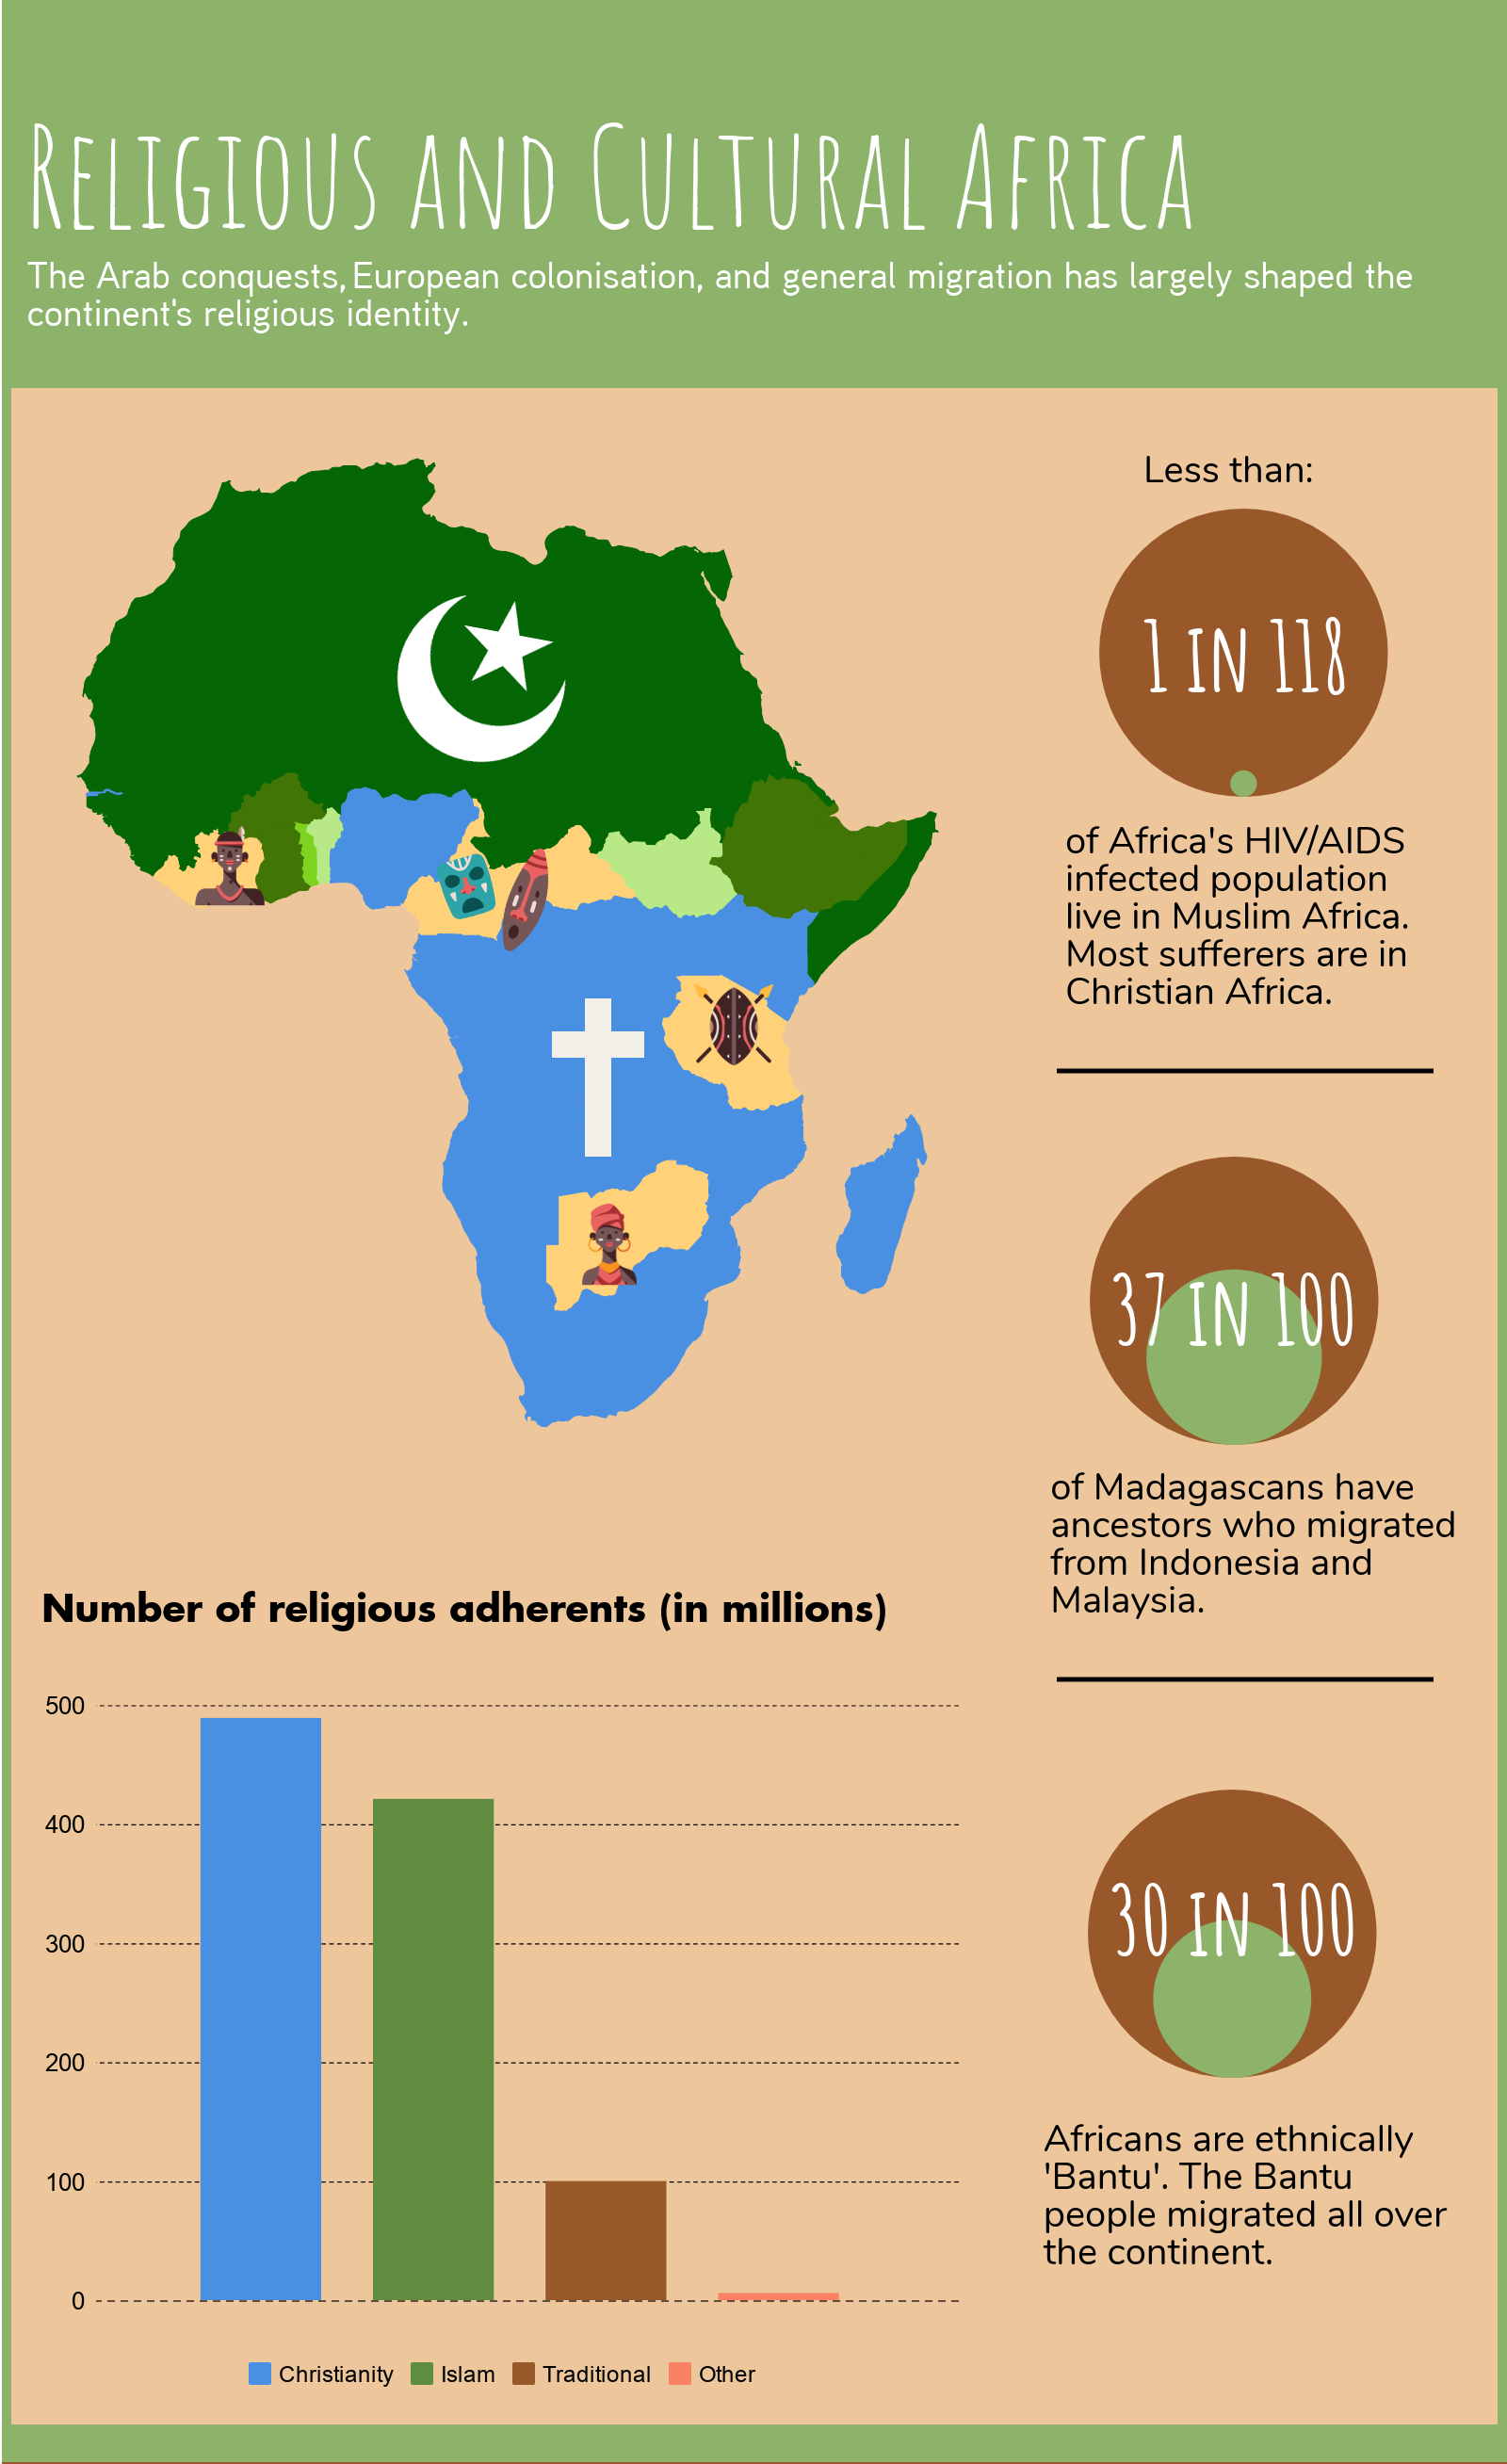 A map of religious and cultural Africa